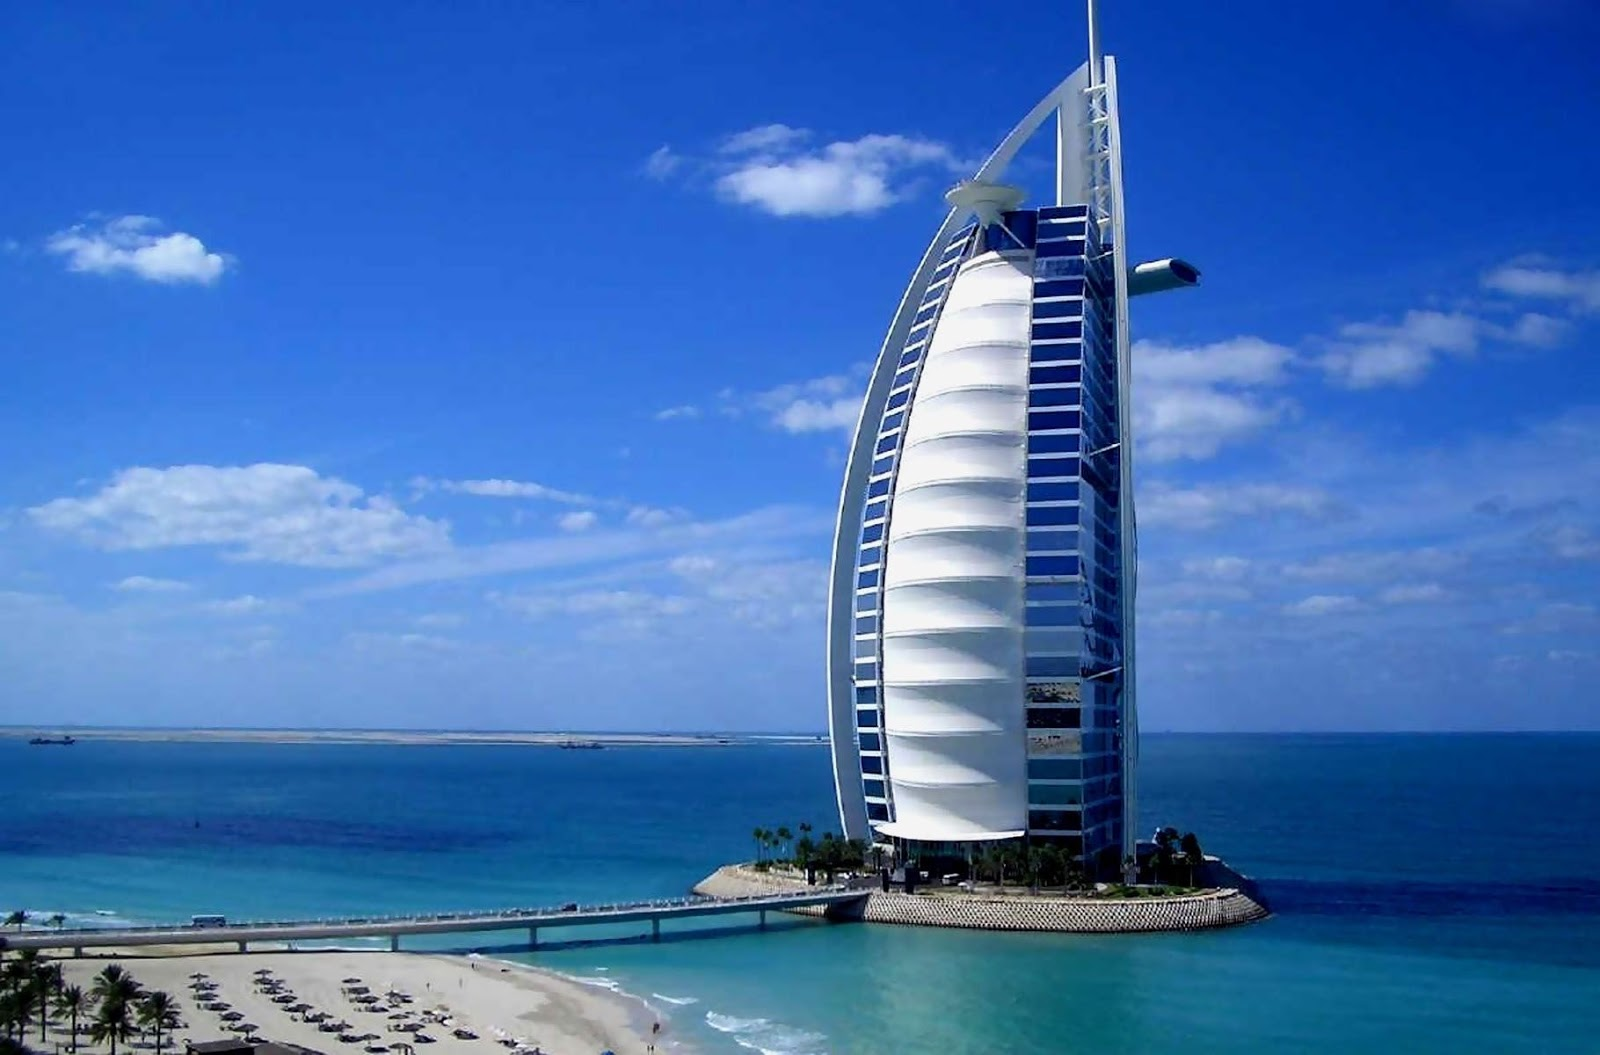 Burj al arab hotel room rates prices info for Burj khalifa room rates per night